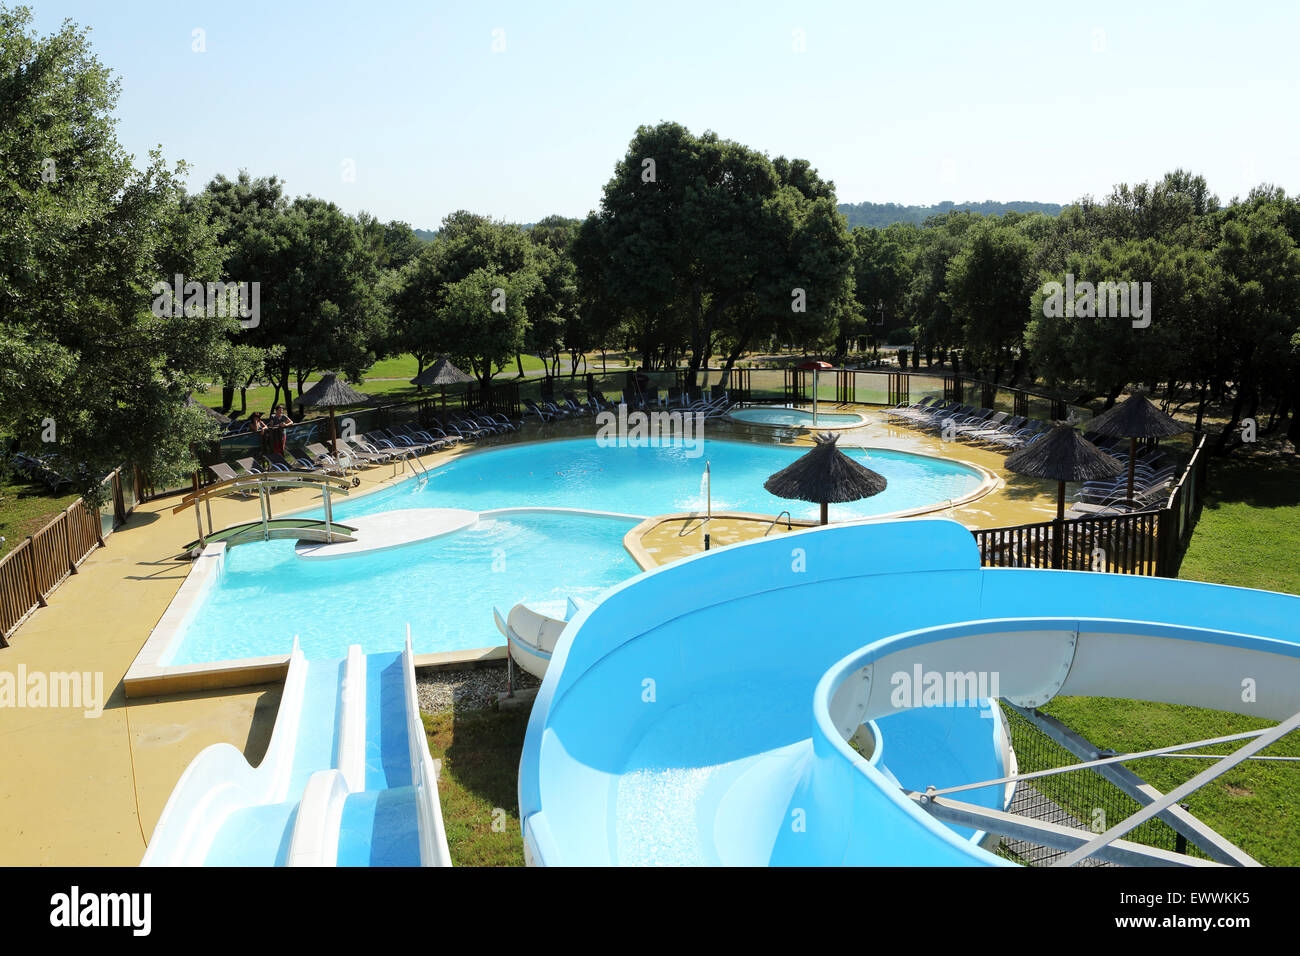 Waterslides stock photos waterslides stock images alamy for Swimming pools with waterslides